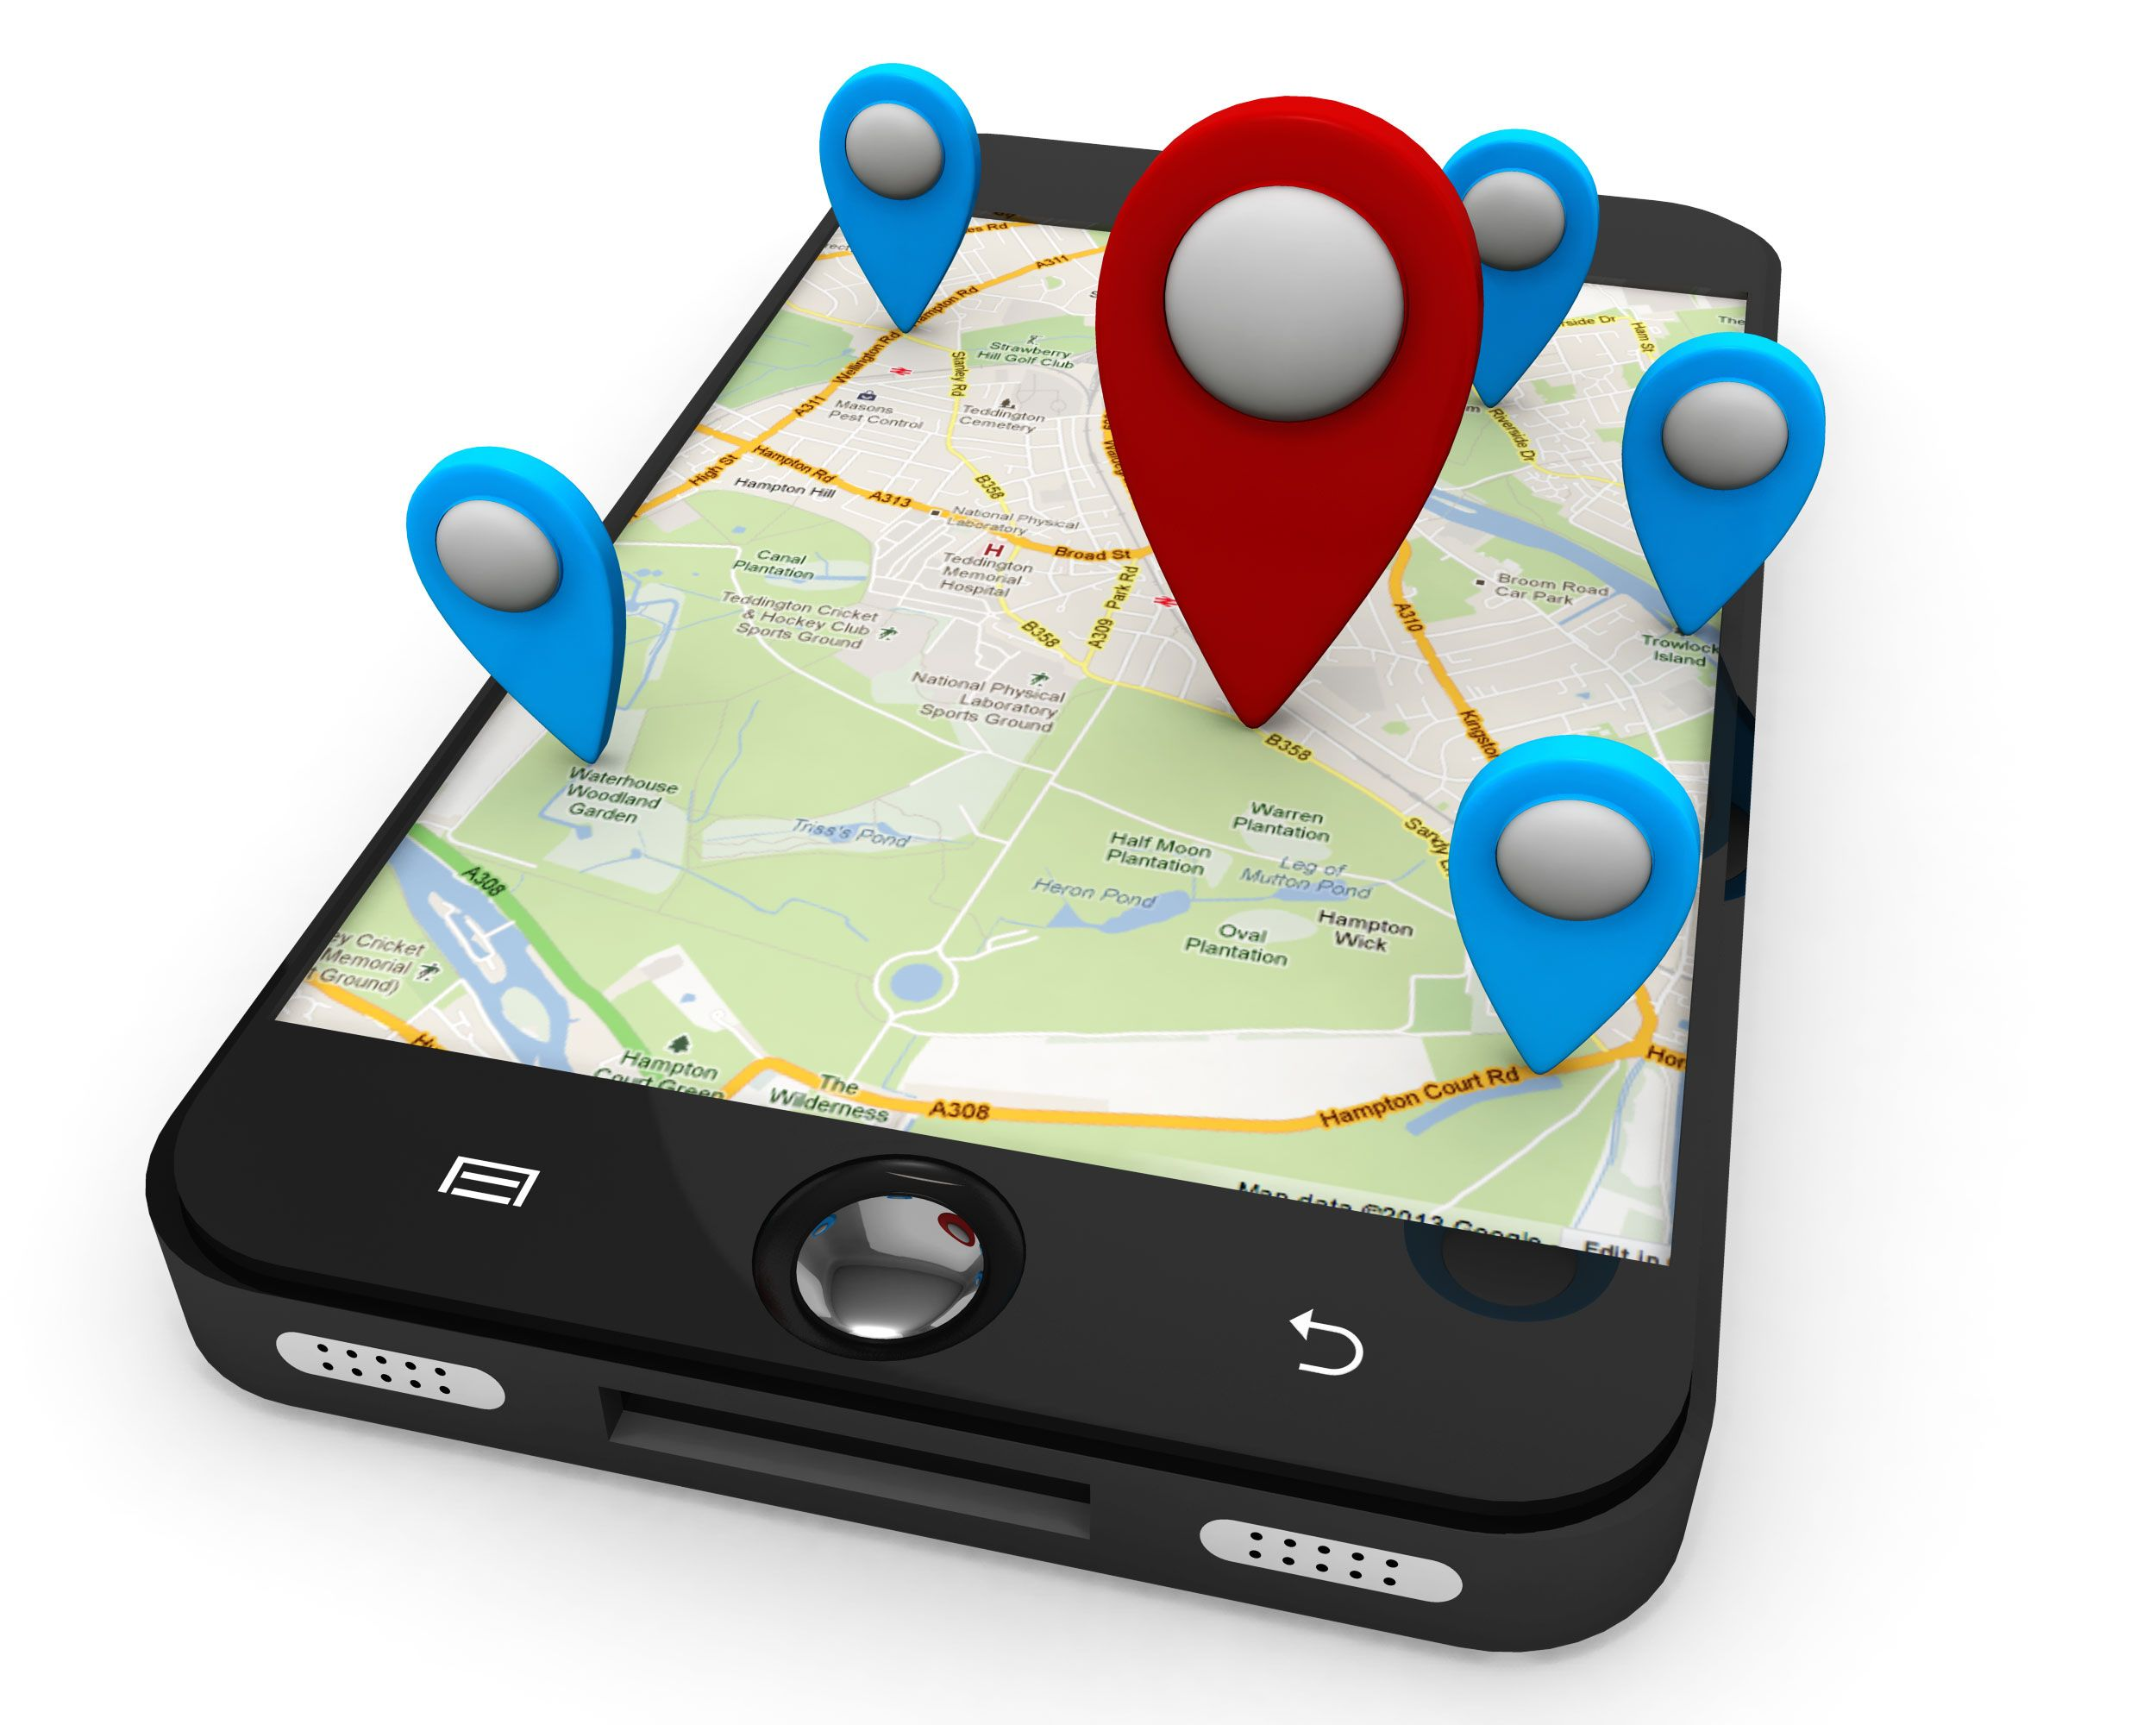 Smart Phone With Map And Multiple Locations Displa Stock ... on map columbus, map amsterdam, map valencia, map sydney, map tokyo, map spain, map france, map venice, map bangkok, map singapore, map victoria, map austin, map mobile, map buenos aires, map ireland, map taipei, map central, map edinburgh, map nashville, map berlin,